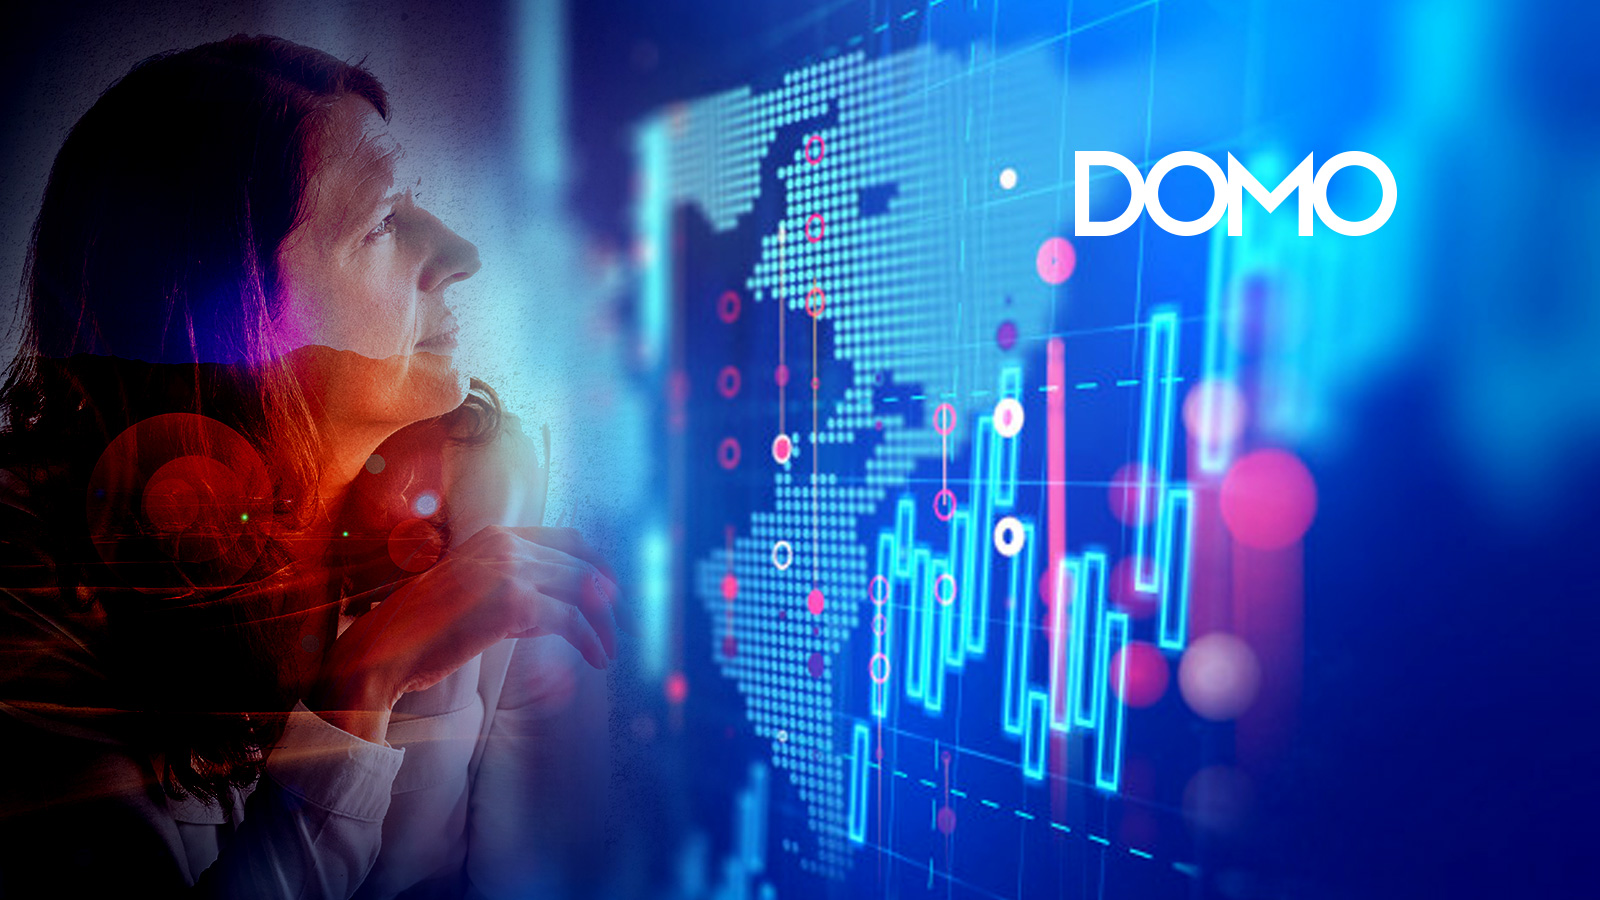 Domo IoT Cloud now Integrates with Zendesk Data Platform to Deliver